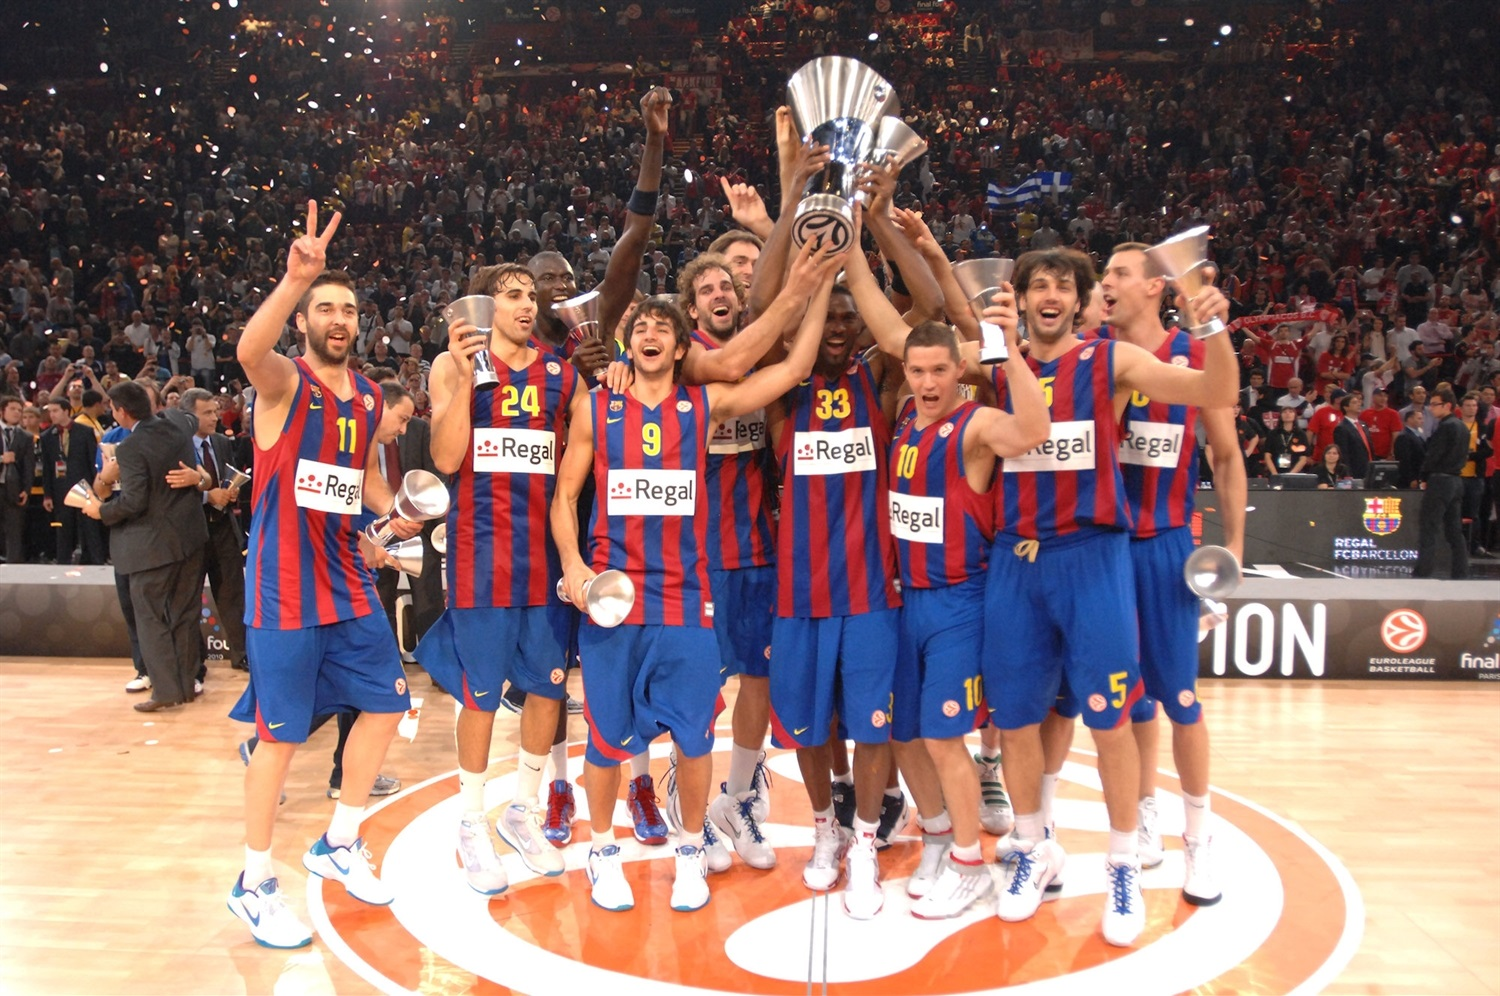 Regal FC Barcelona Champ Euroleague 2010 - Final Four Paris 2010 - EB10